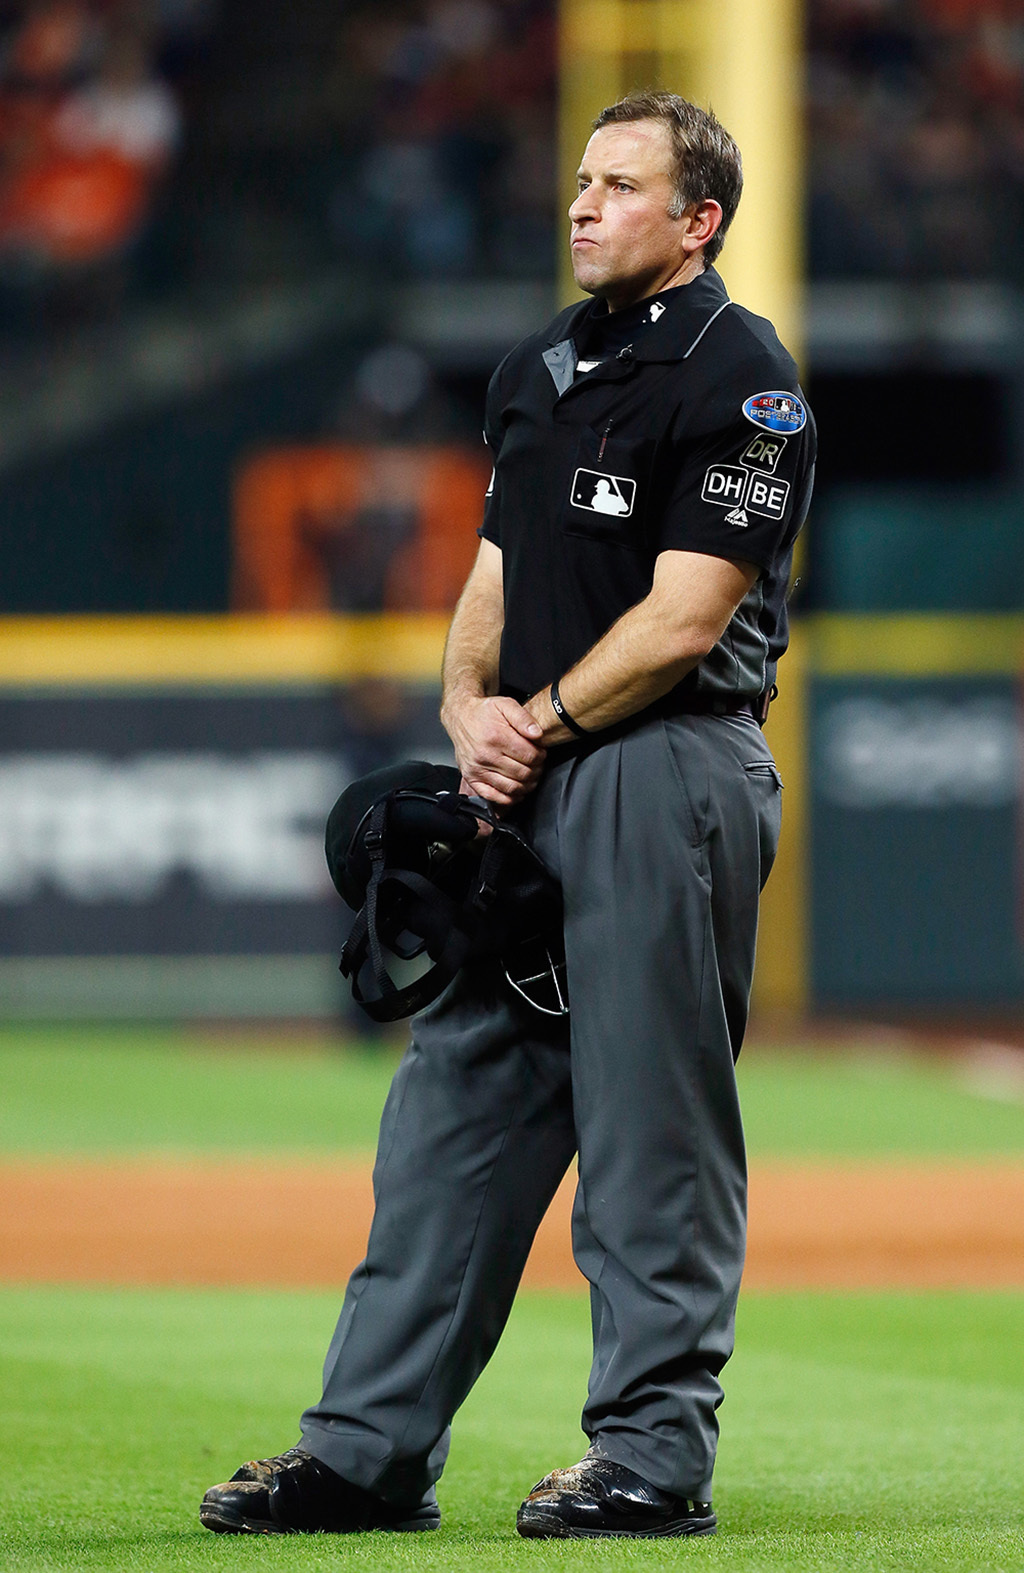 Christ-following umpire Chris Guccione returns for his second World Series